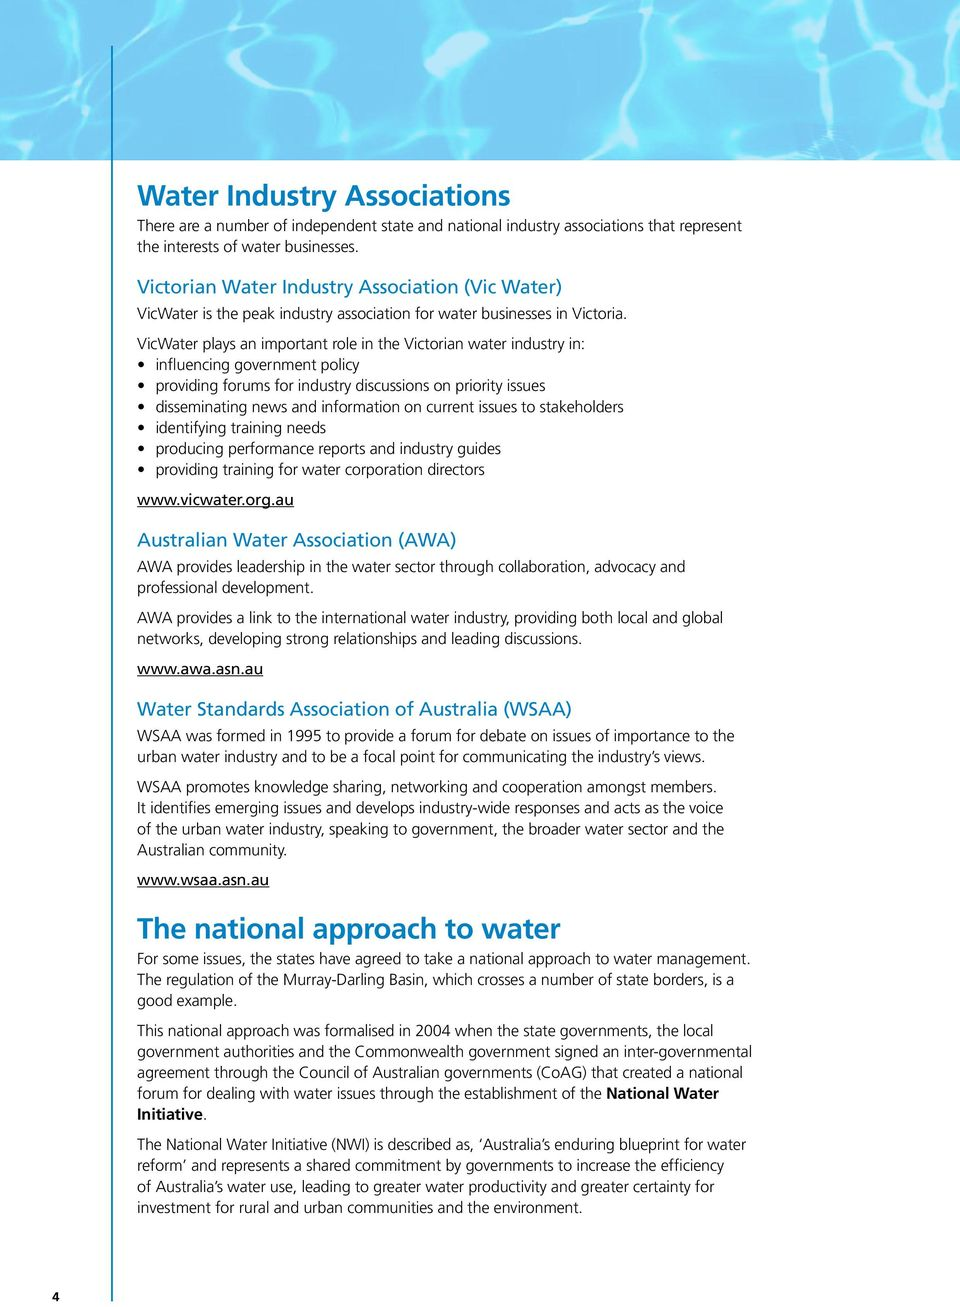 VicWater plays an important role in the Victorian water industry in: influencing government policy providing forums for industry discussions on priority issues disseminating news and information on